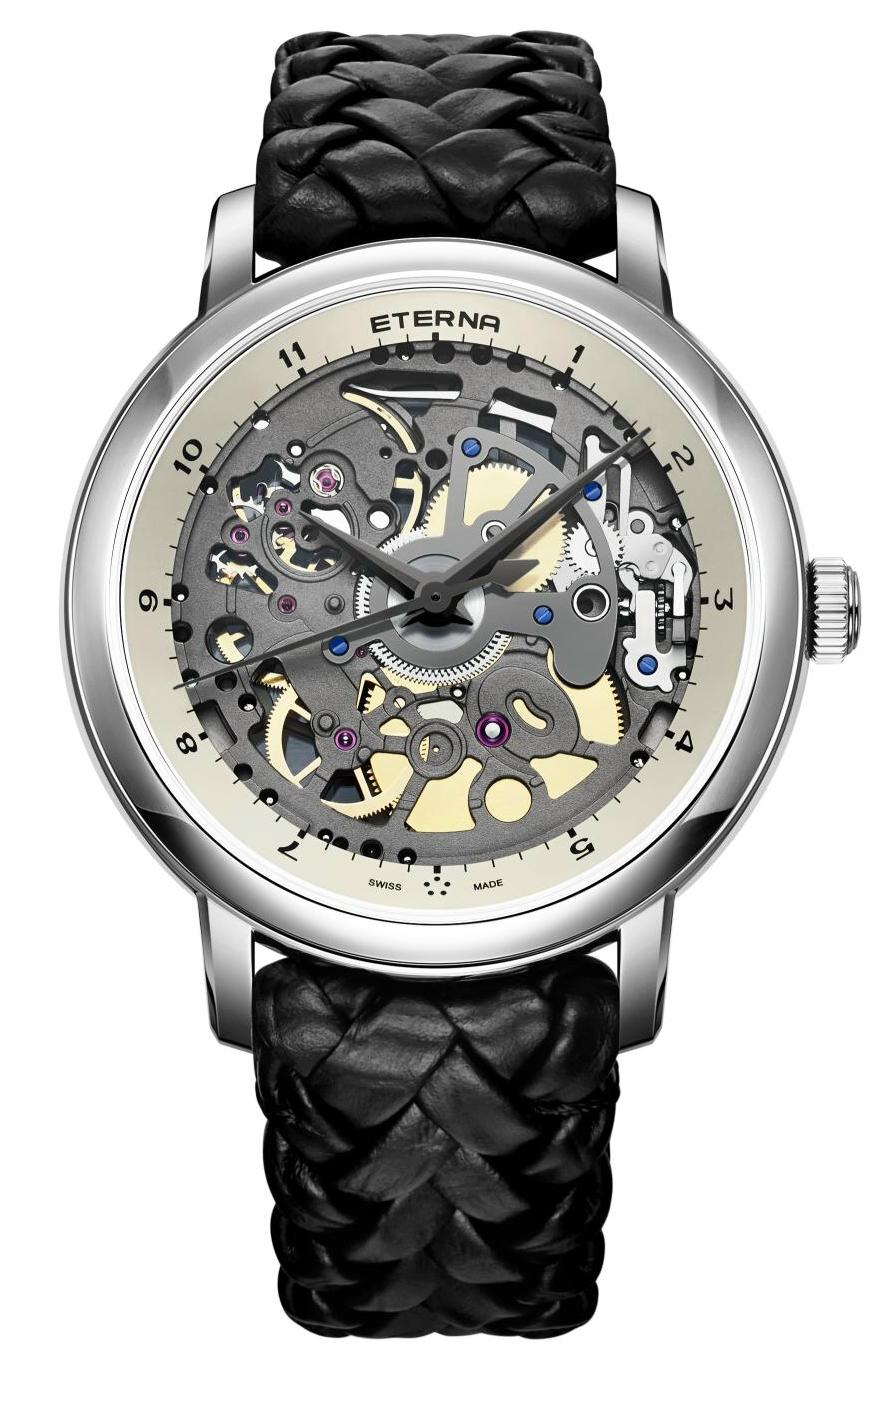 Eterna-Skeleton-1856-Limited-Edition-2.jpg